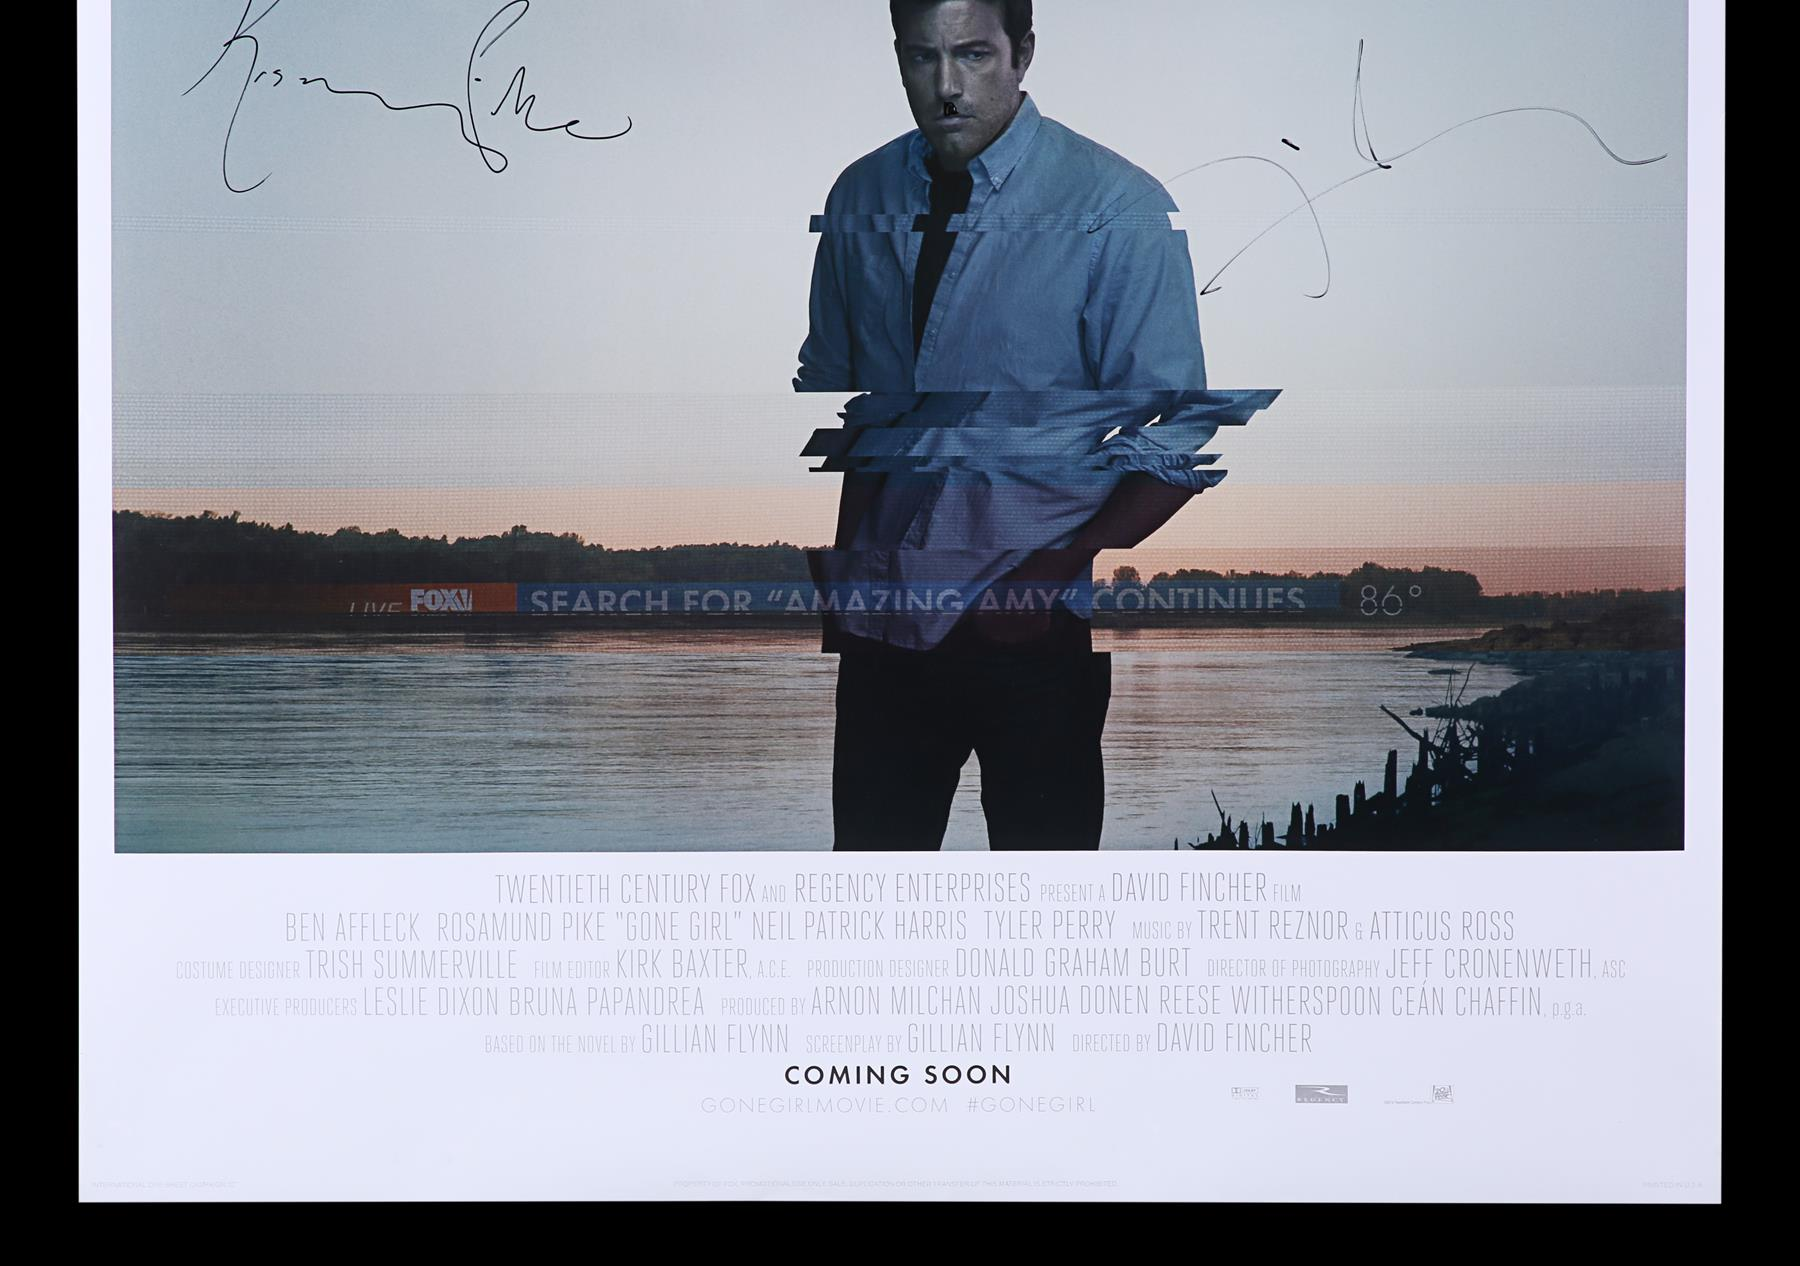 GONE GIRL (2014) - Poster Autographed by David Fincher and Rosamund Pike - Image 3 of 7